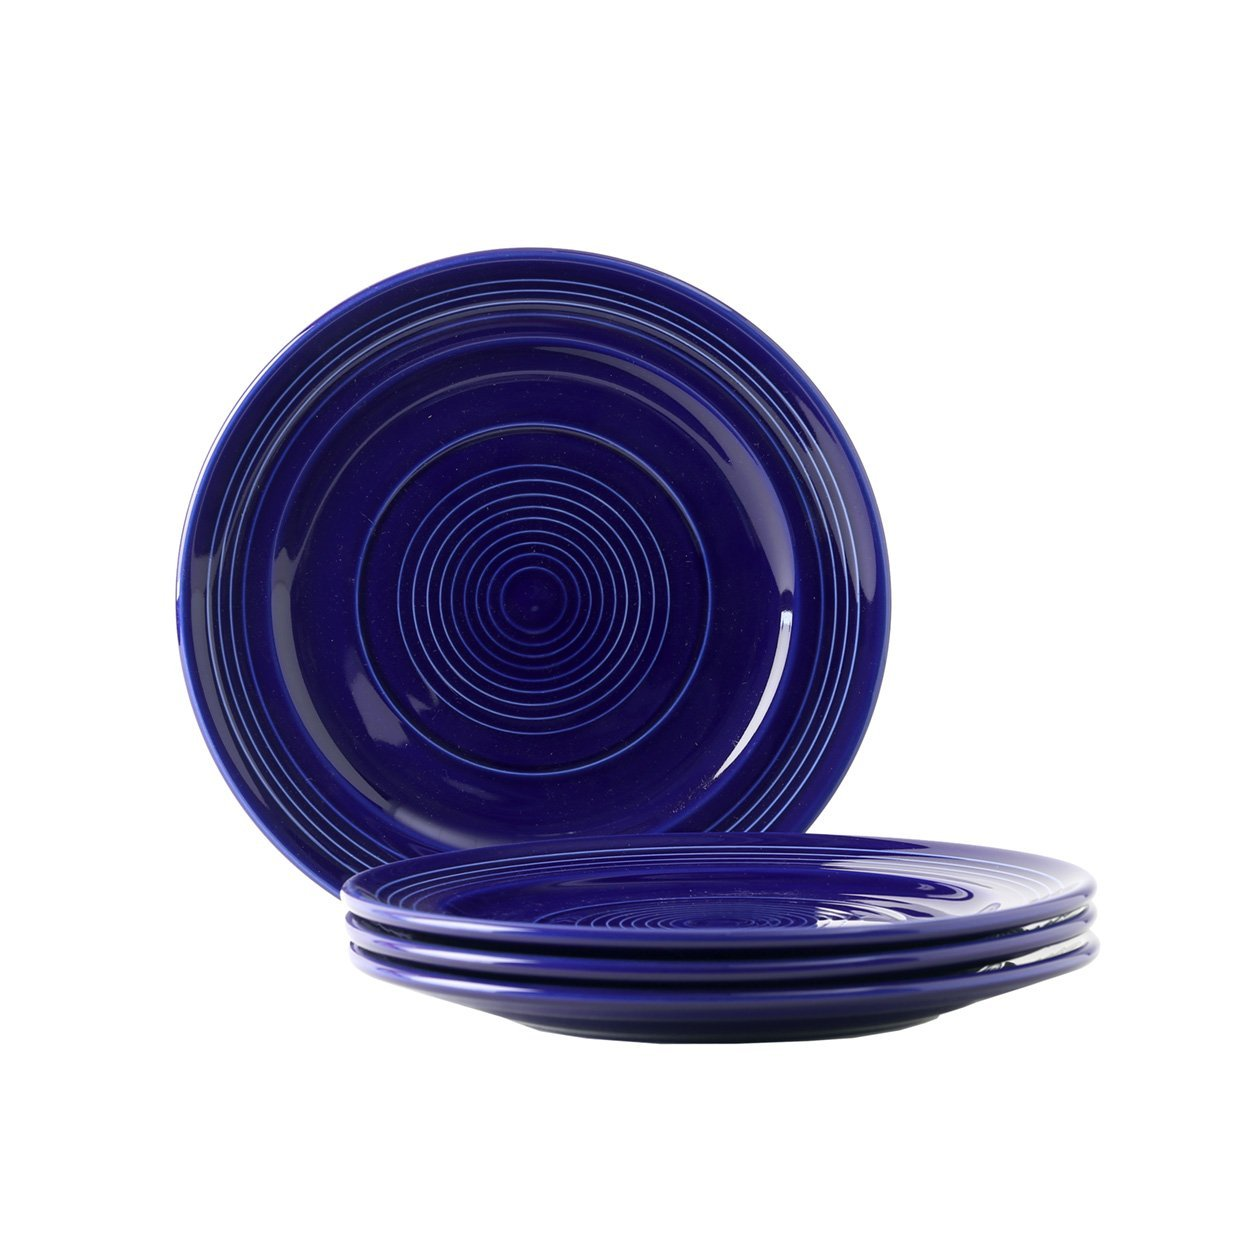 Tuxton Home Concentrix Luncheon Plate (Set of 4), 9'', Cobalt Blue; Heavy Duty; Chip Resistant; Lead and Cadmium Free; Freezer to Oven Safe up to 500F